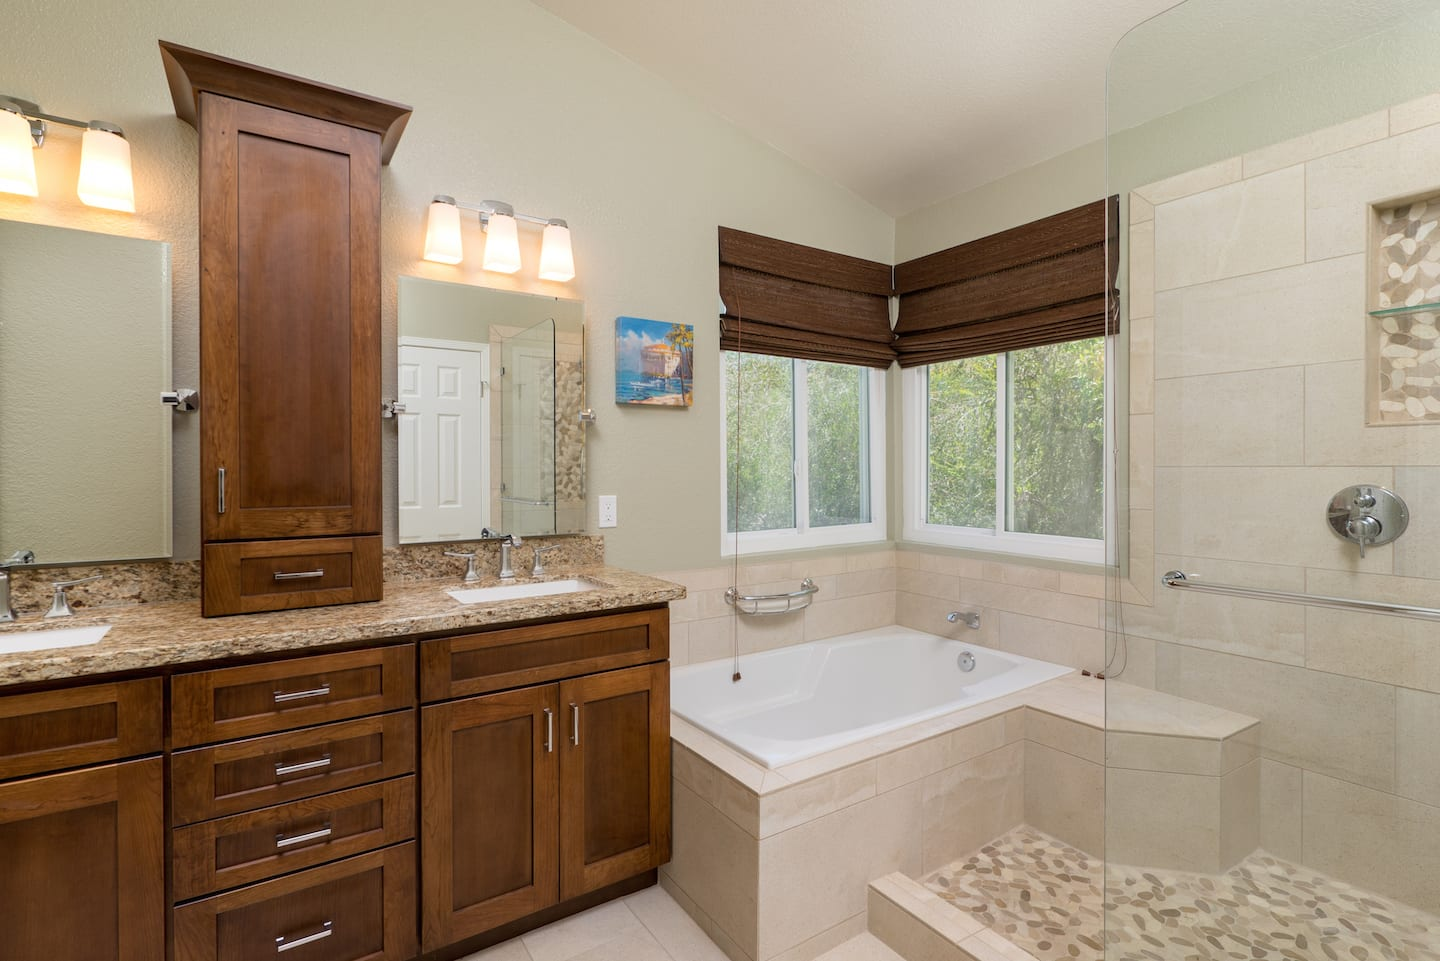 atlart remodel new bath small to get redo remodels contractors makeovers remodeling renovations bathroom com kitchen